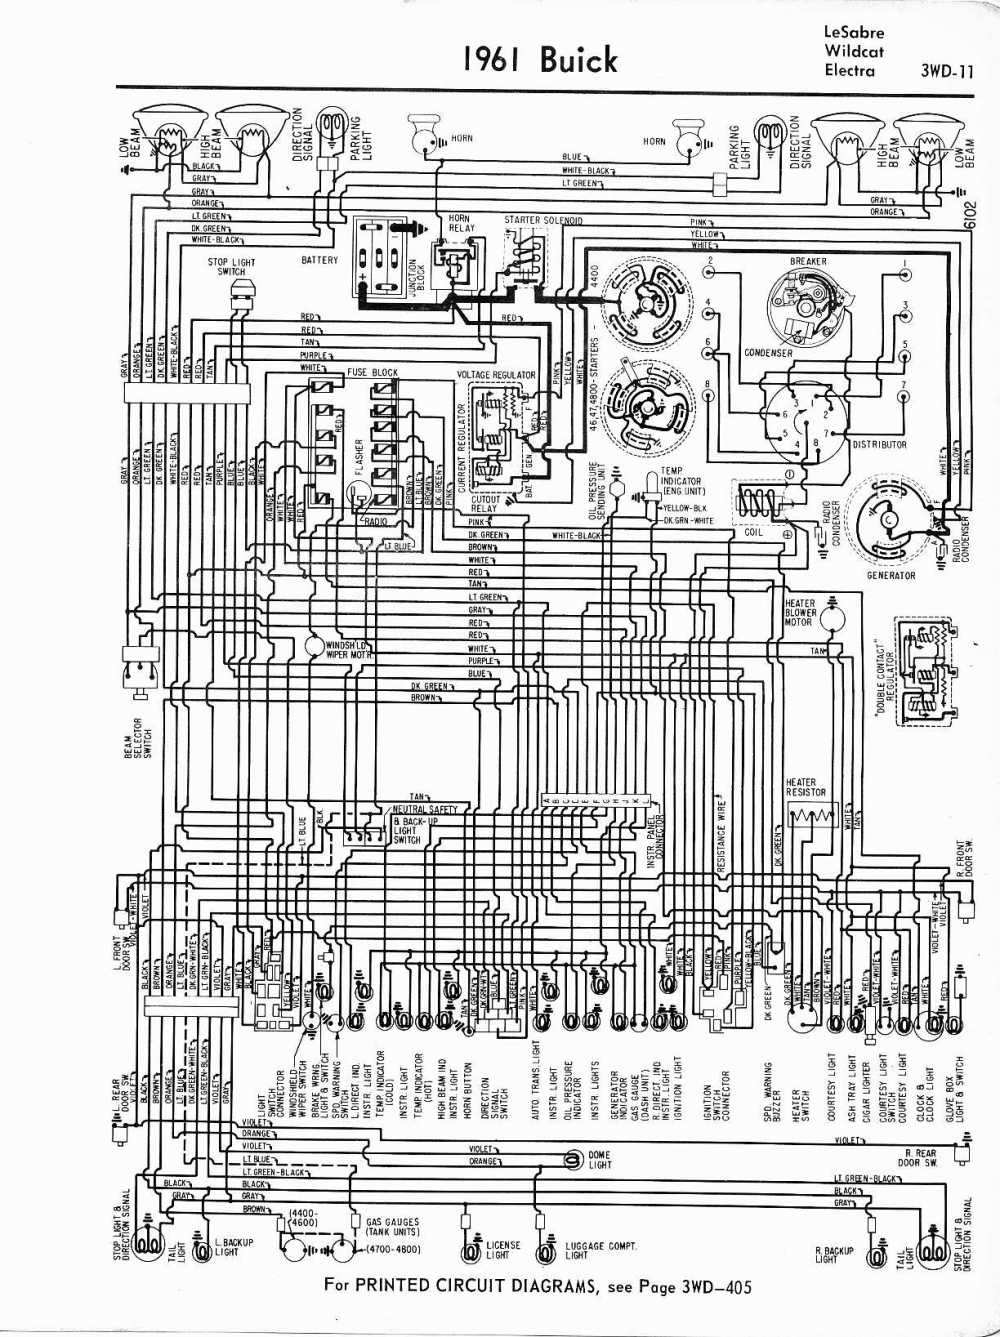 medium resolution of buick wiring diagrams 1957 1965 buick lesabre motor mount diagram on 2000 buick lesabre ac wiring